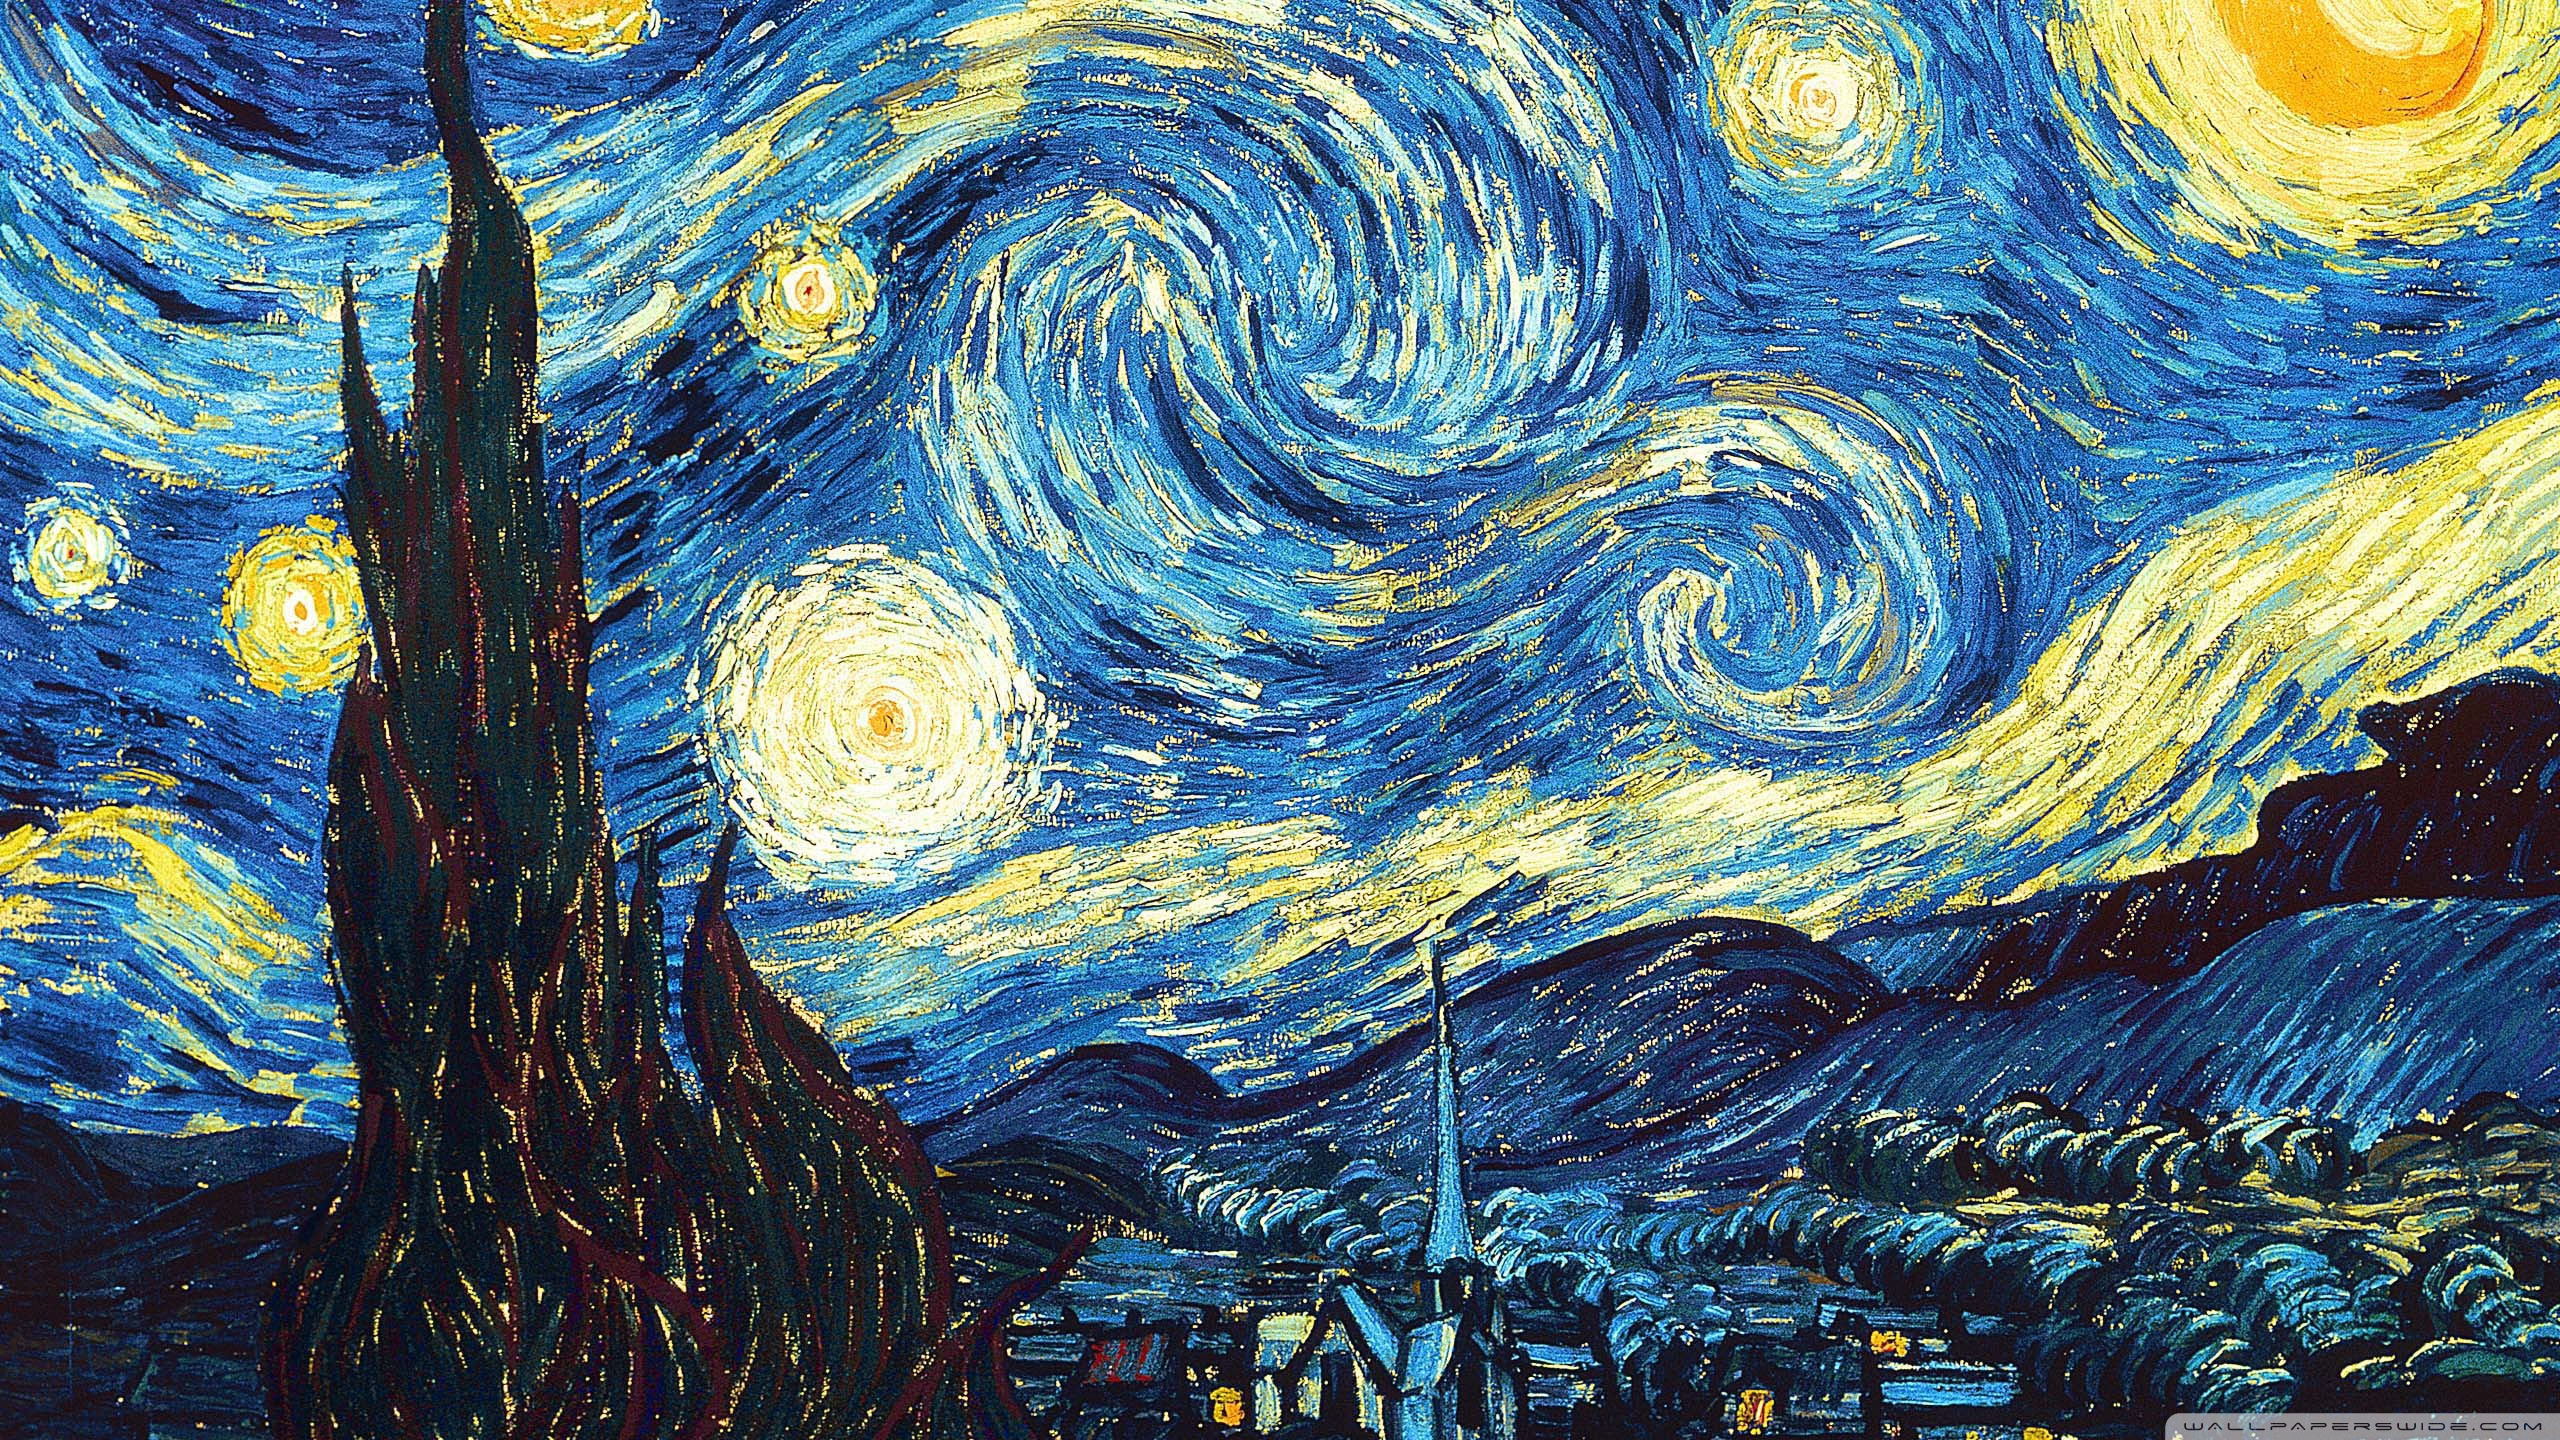 HD Wallpaper Starry Night